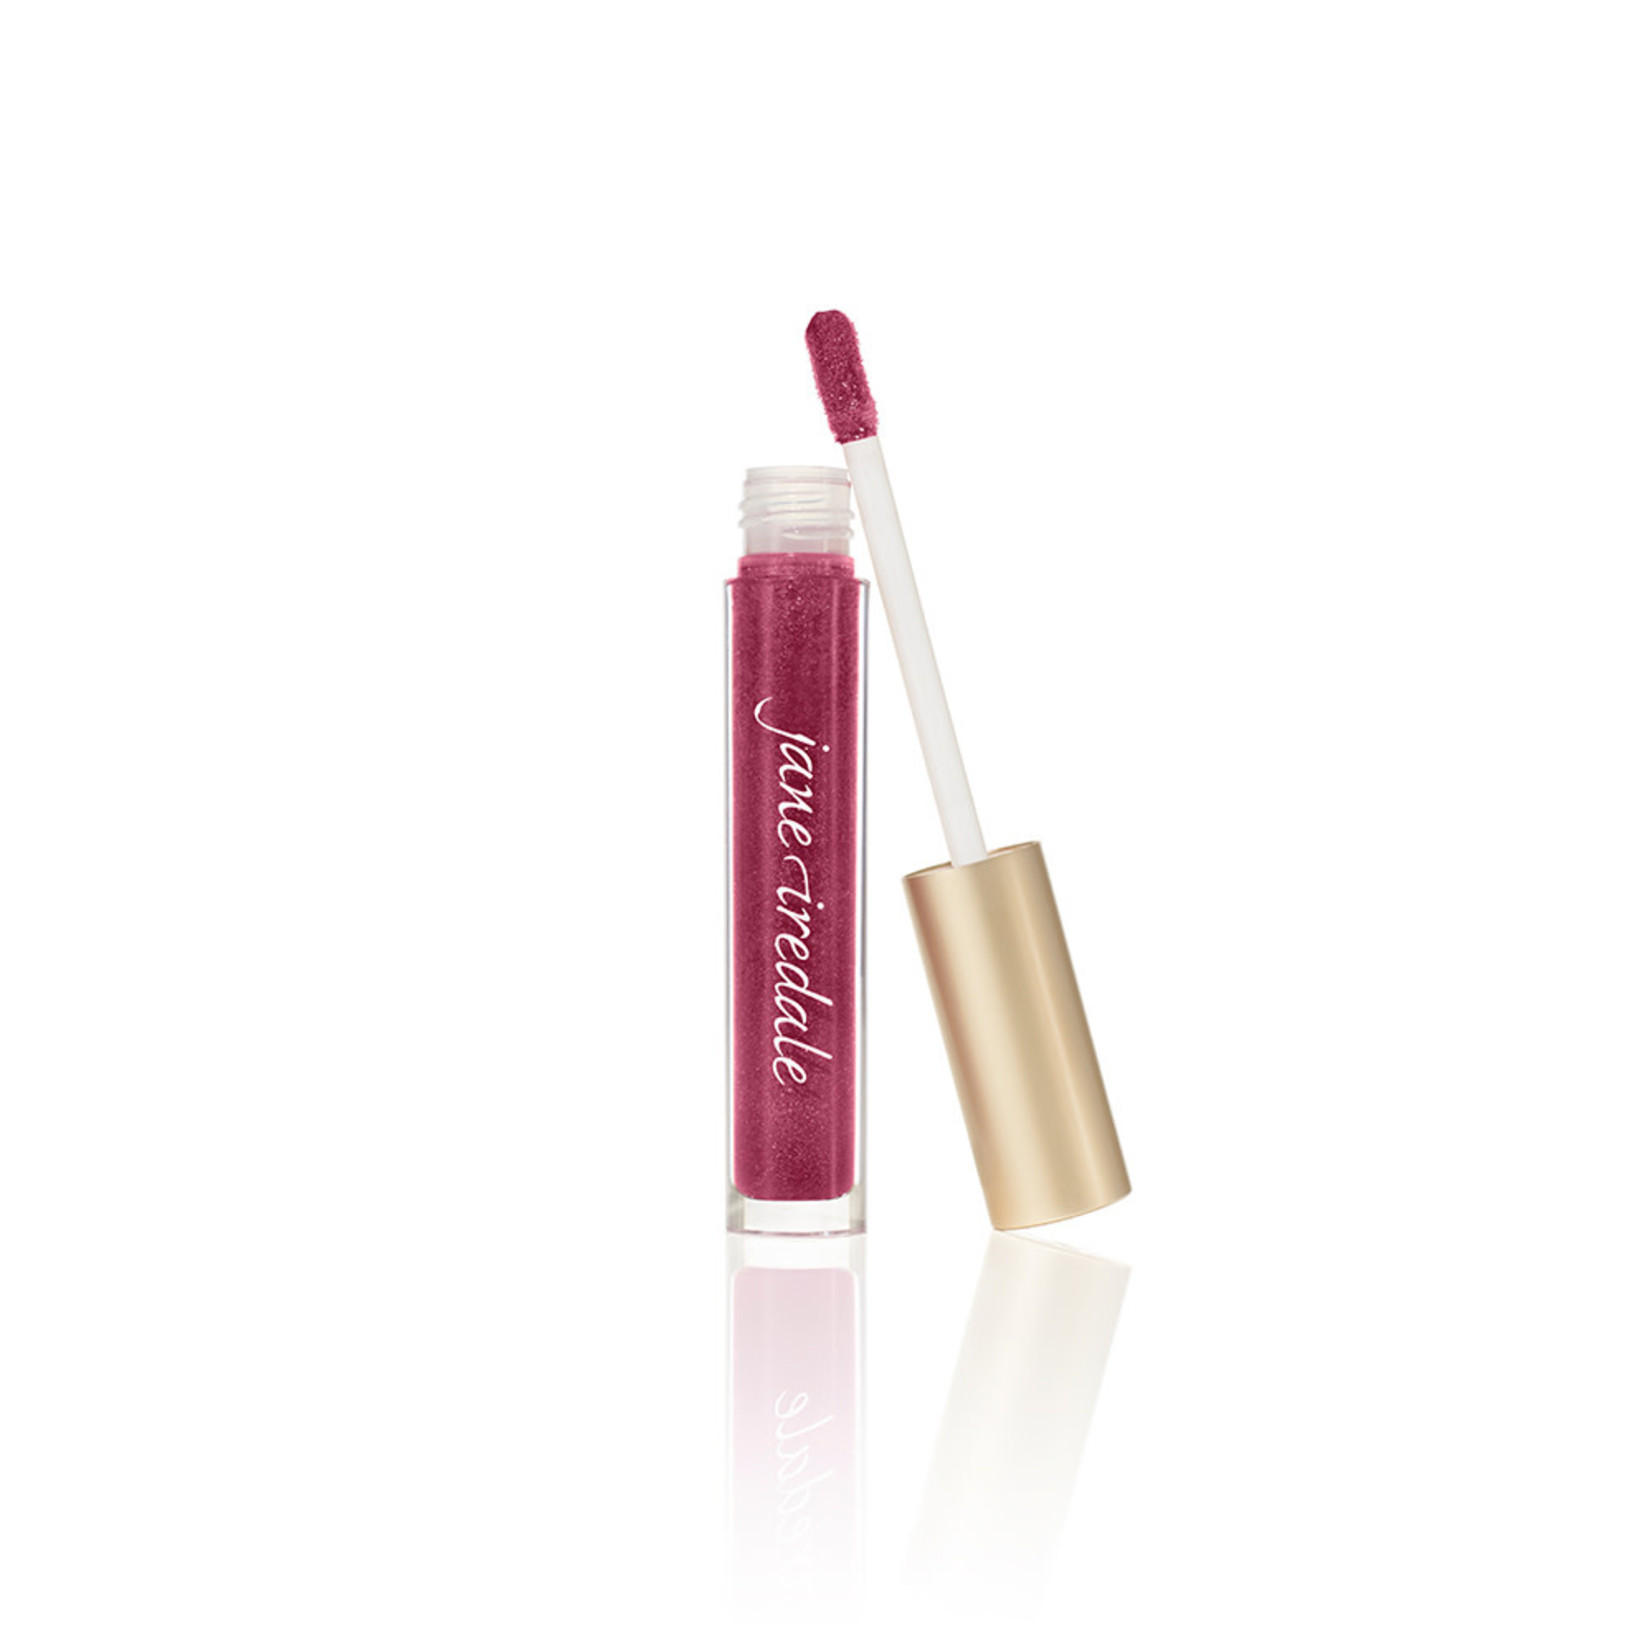 jane iredale Hyaluronic lip gloss - candied rose